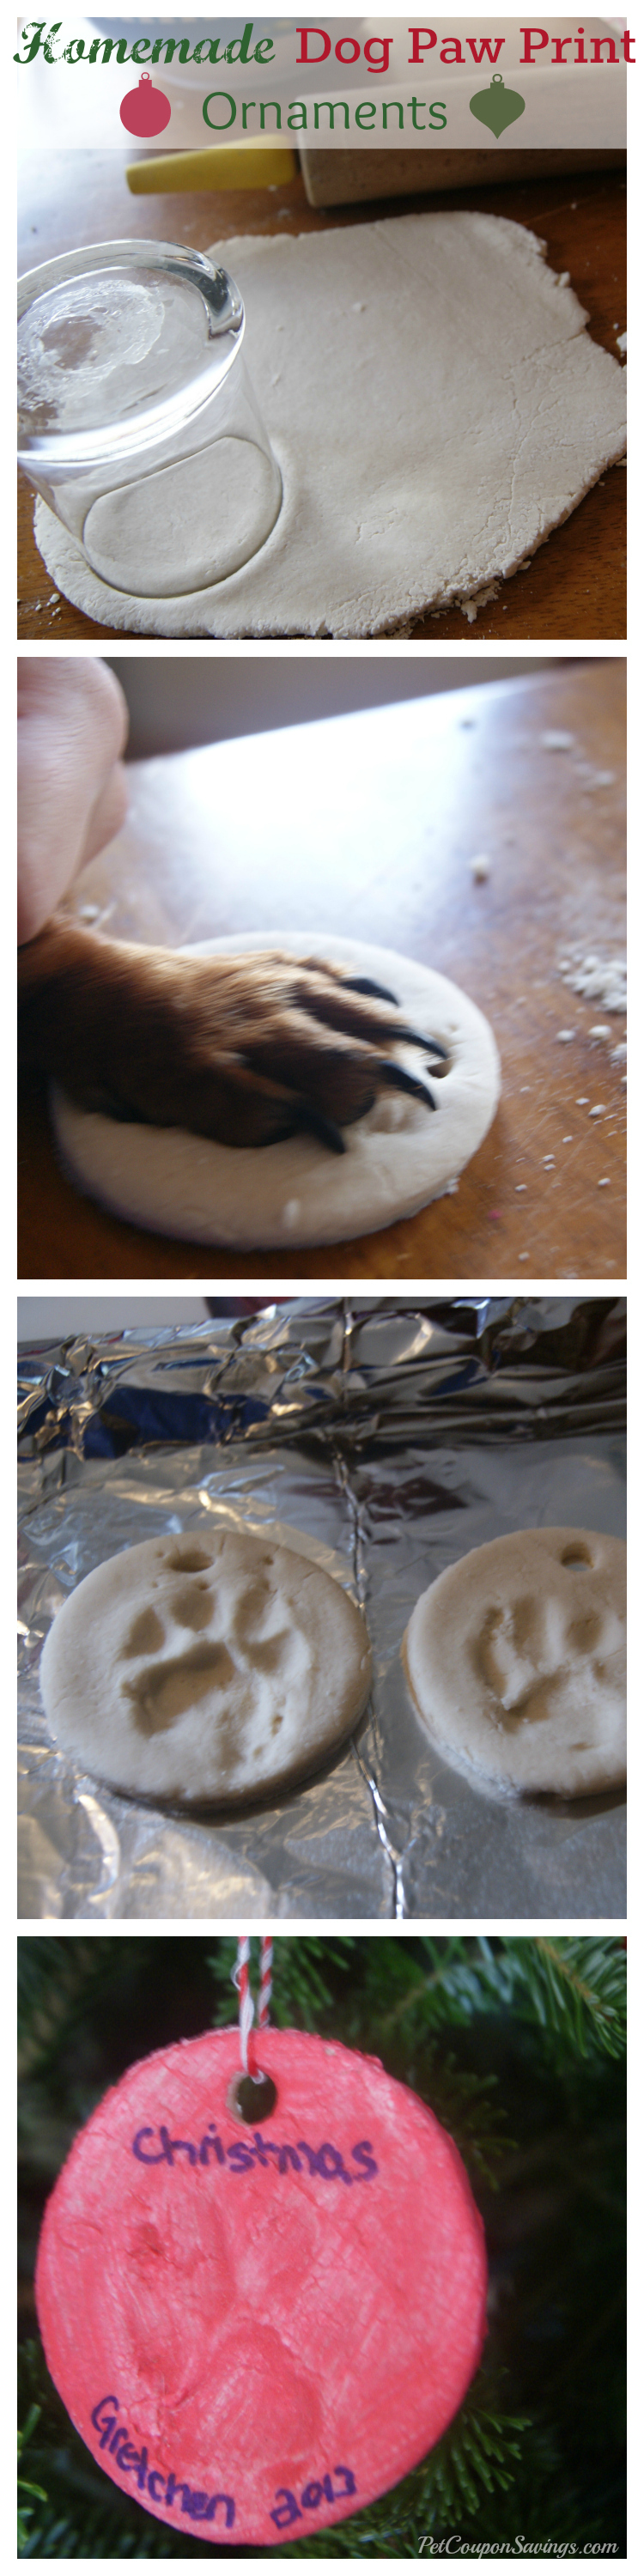 DIY Homemade Dog Paw Print Ornaments